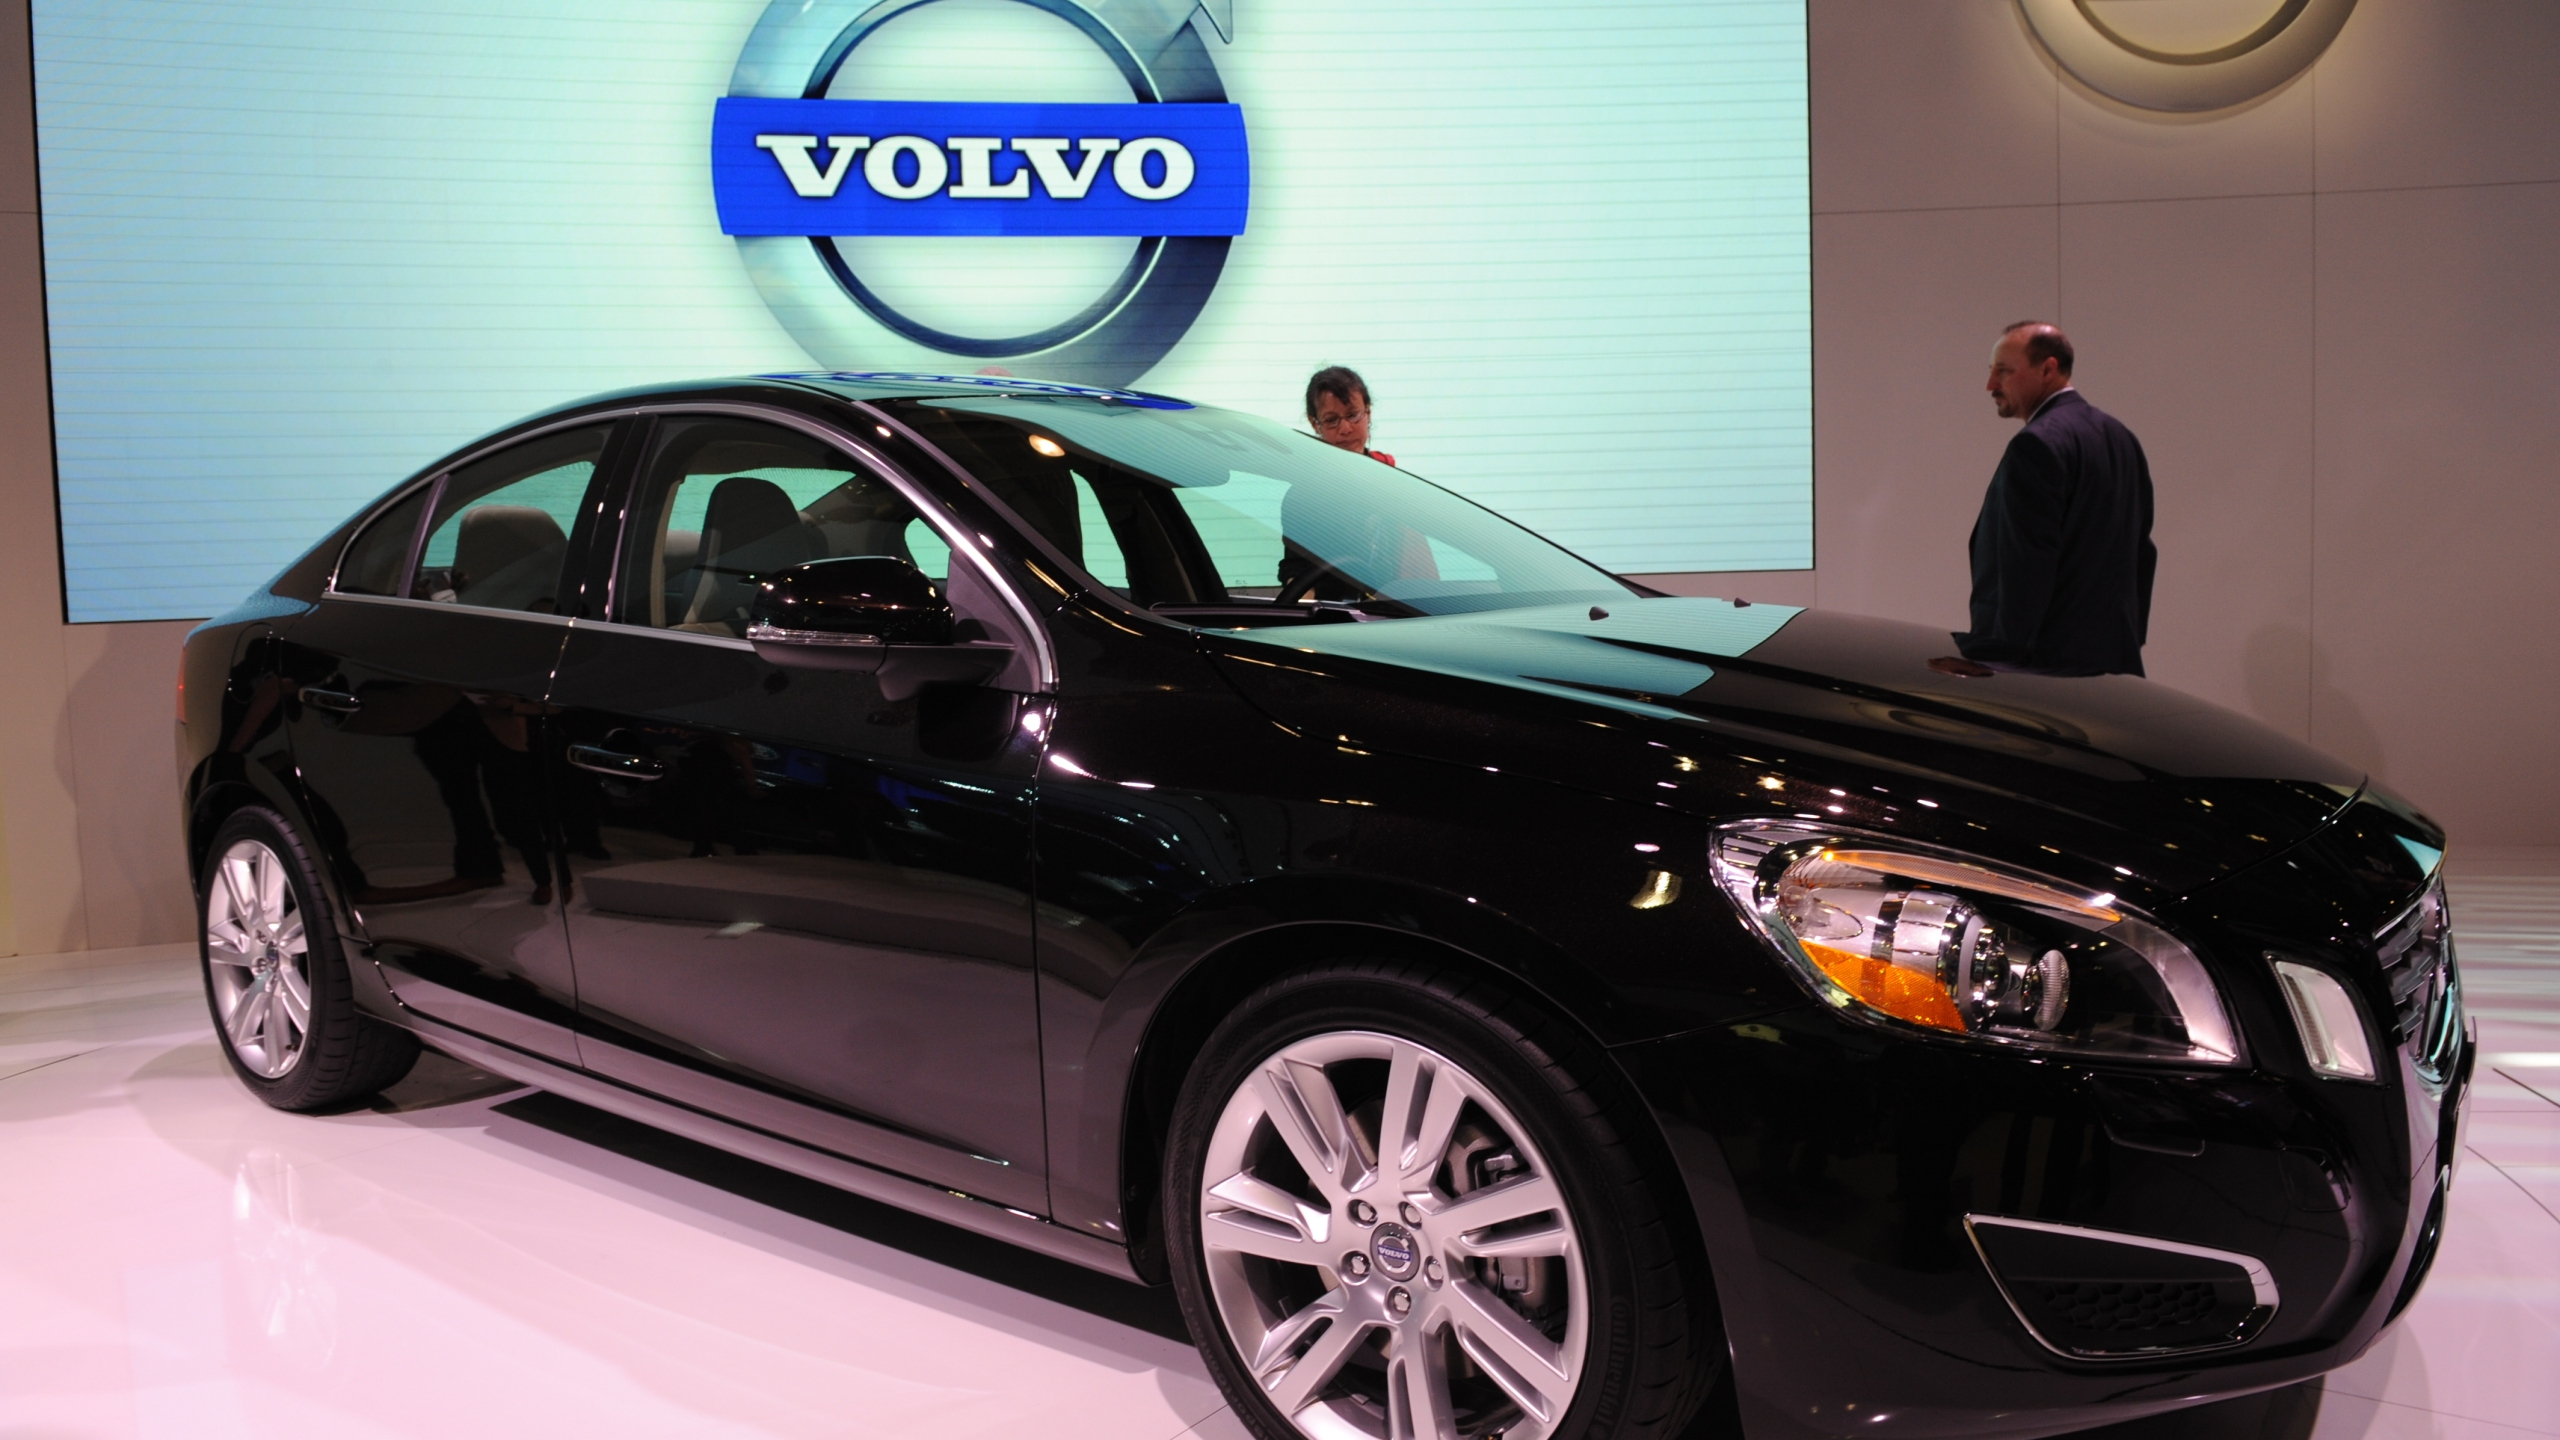 The Volvo S60 is seen at the New York International Auto Show on March 31, 2010 in New York. (STAN HONDA/AFP via Getty Images)